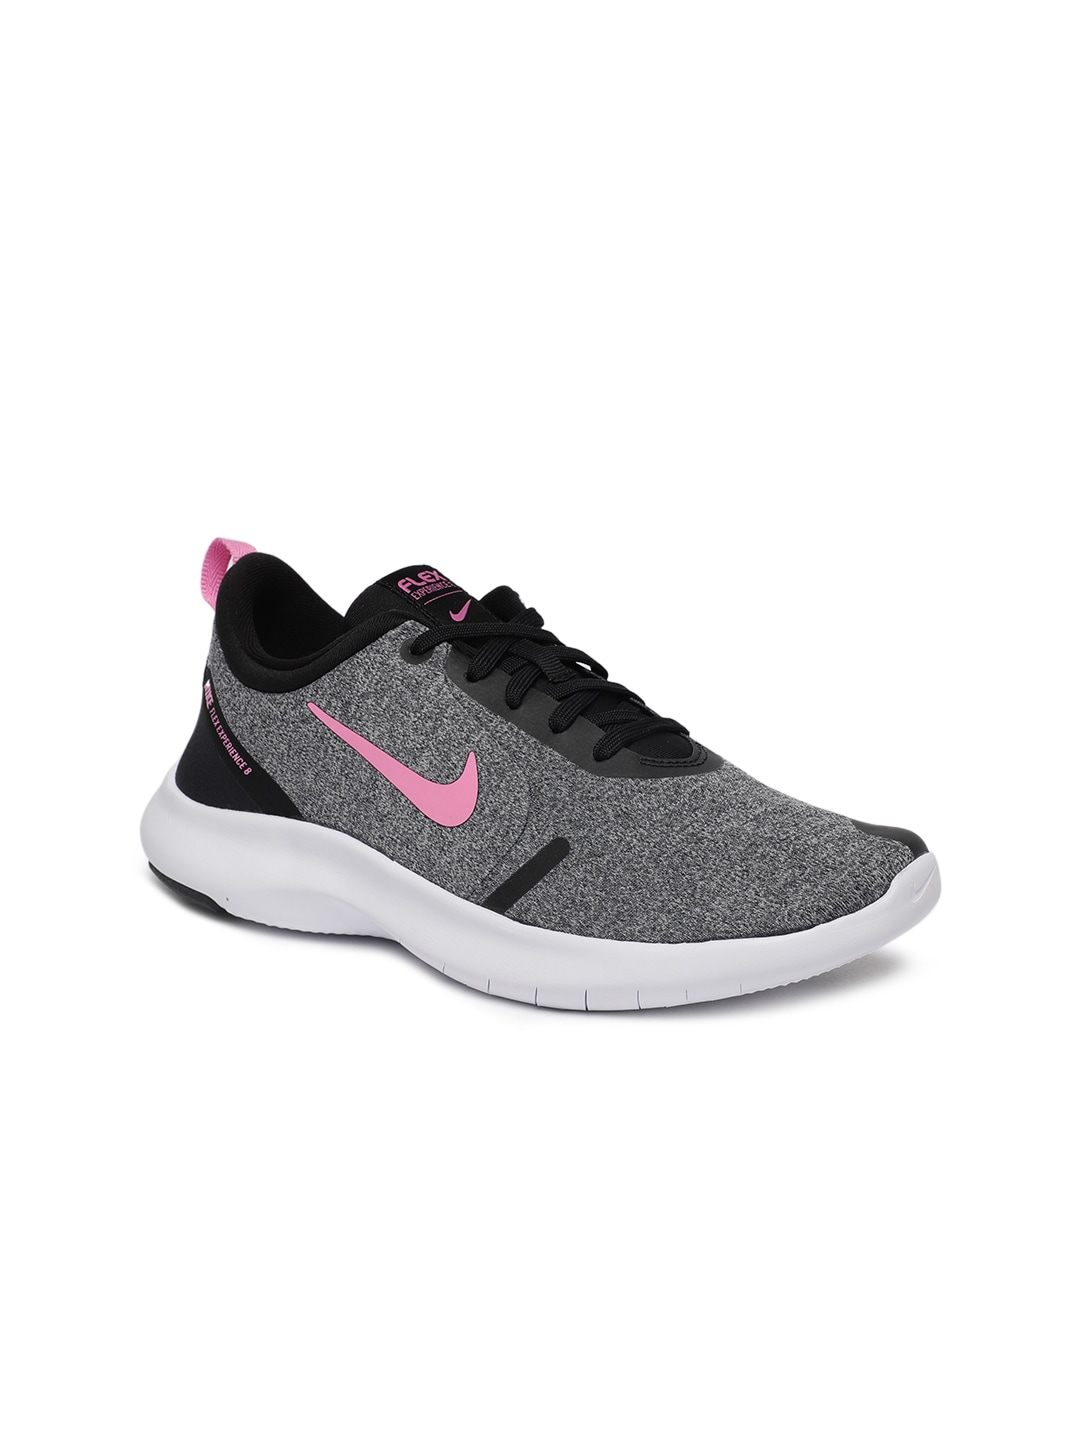 01cef1e0a033 Nike - Shop for Nike Apparels Online in India